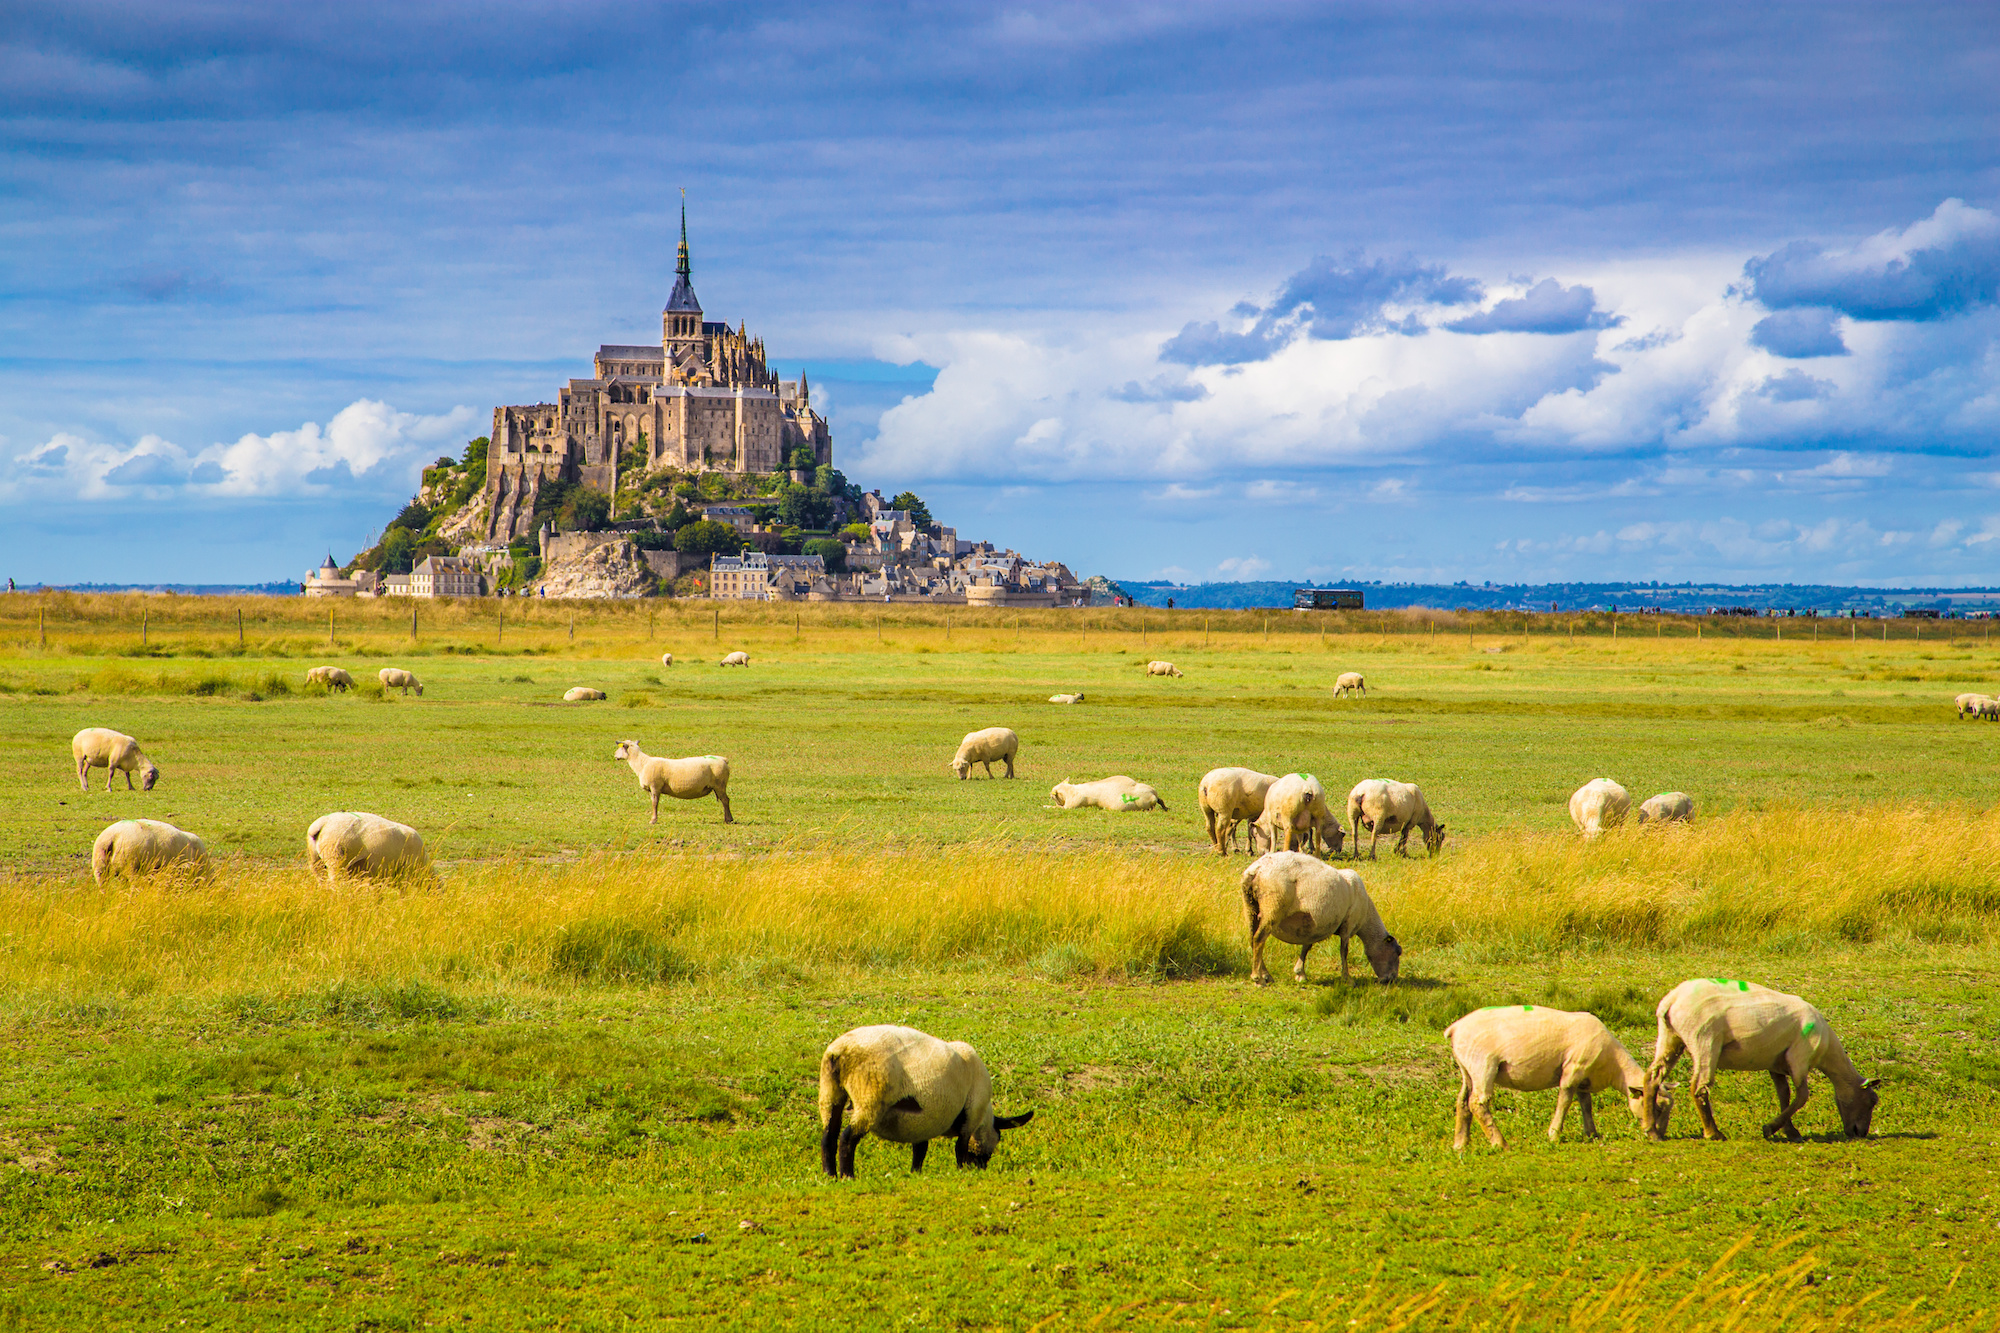 Le Mont Saint-Michel with sheep grazing on green meadows in summer, Normandy, France